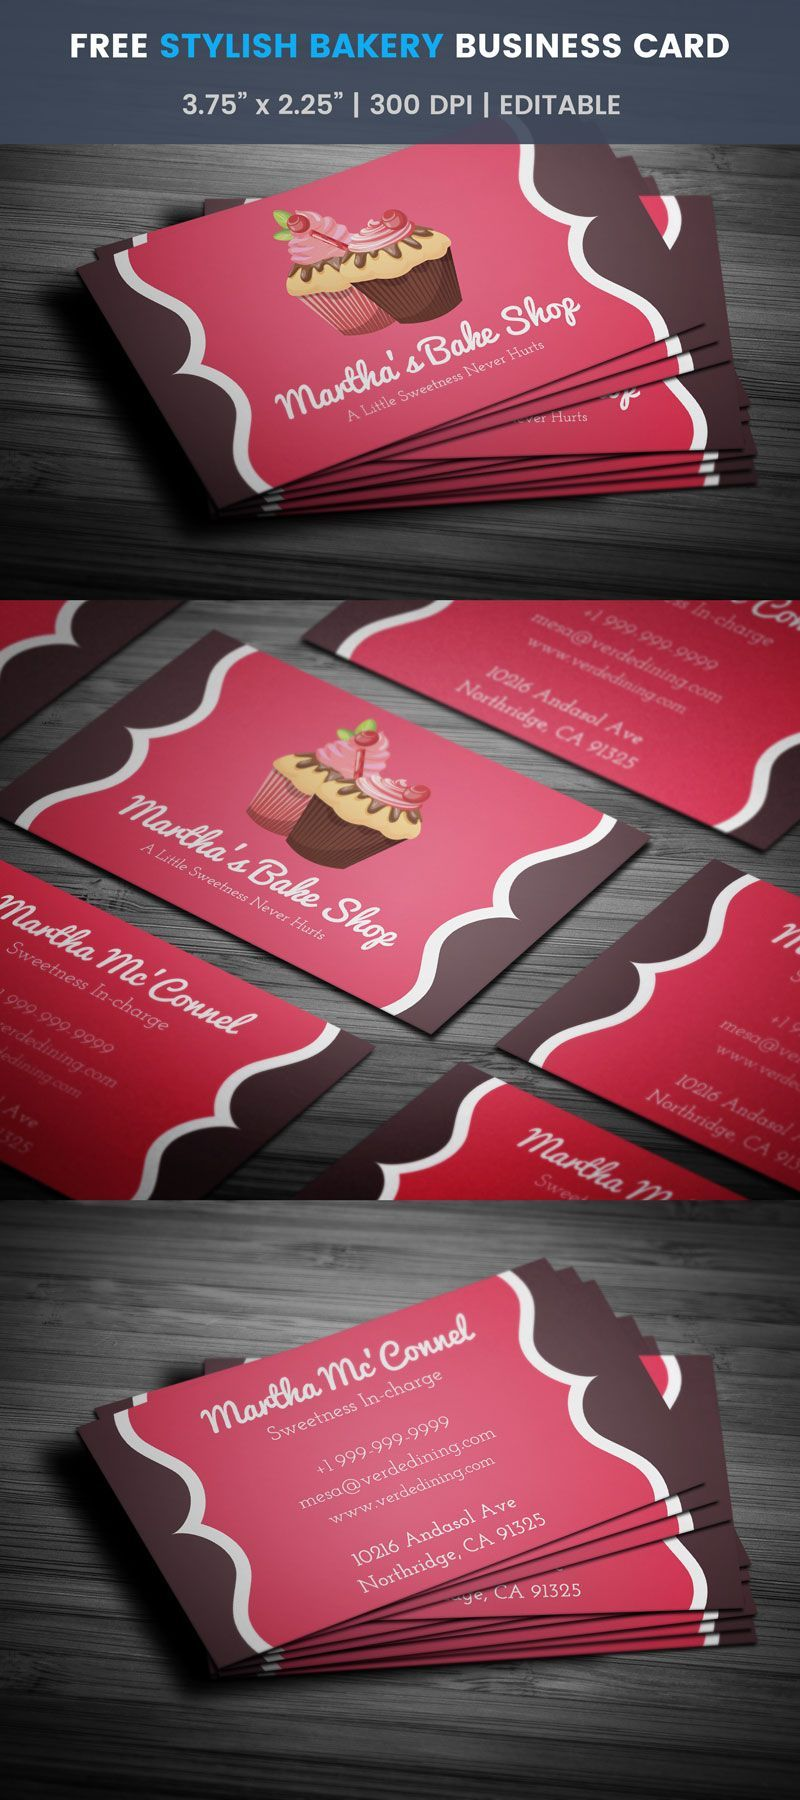 Catchy Stylish Bakery Business Card Template Full Preview